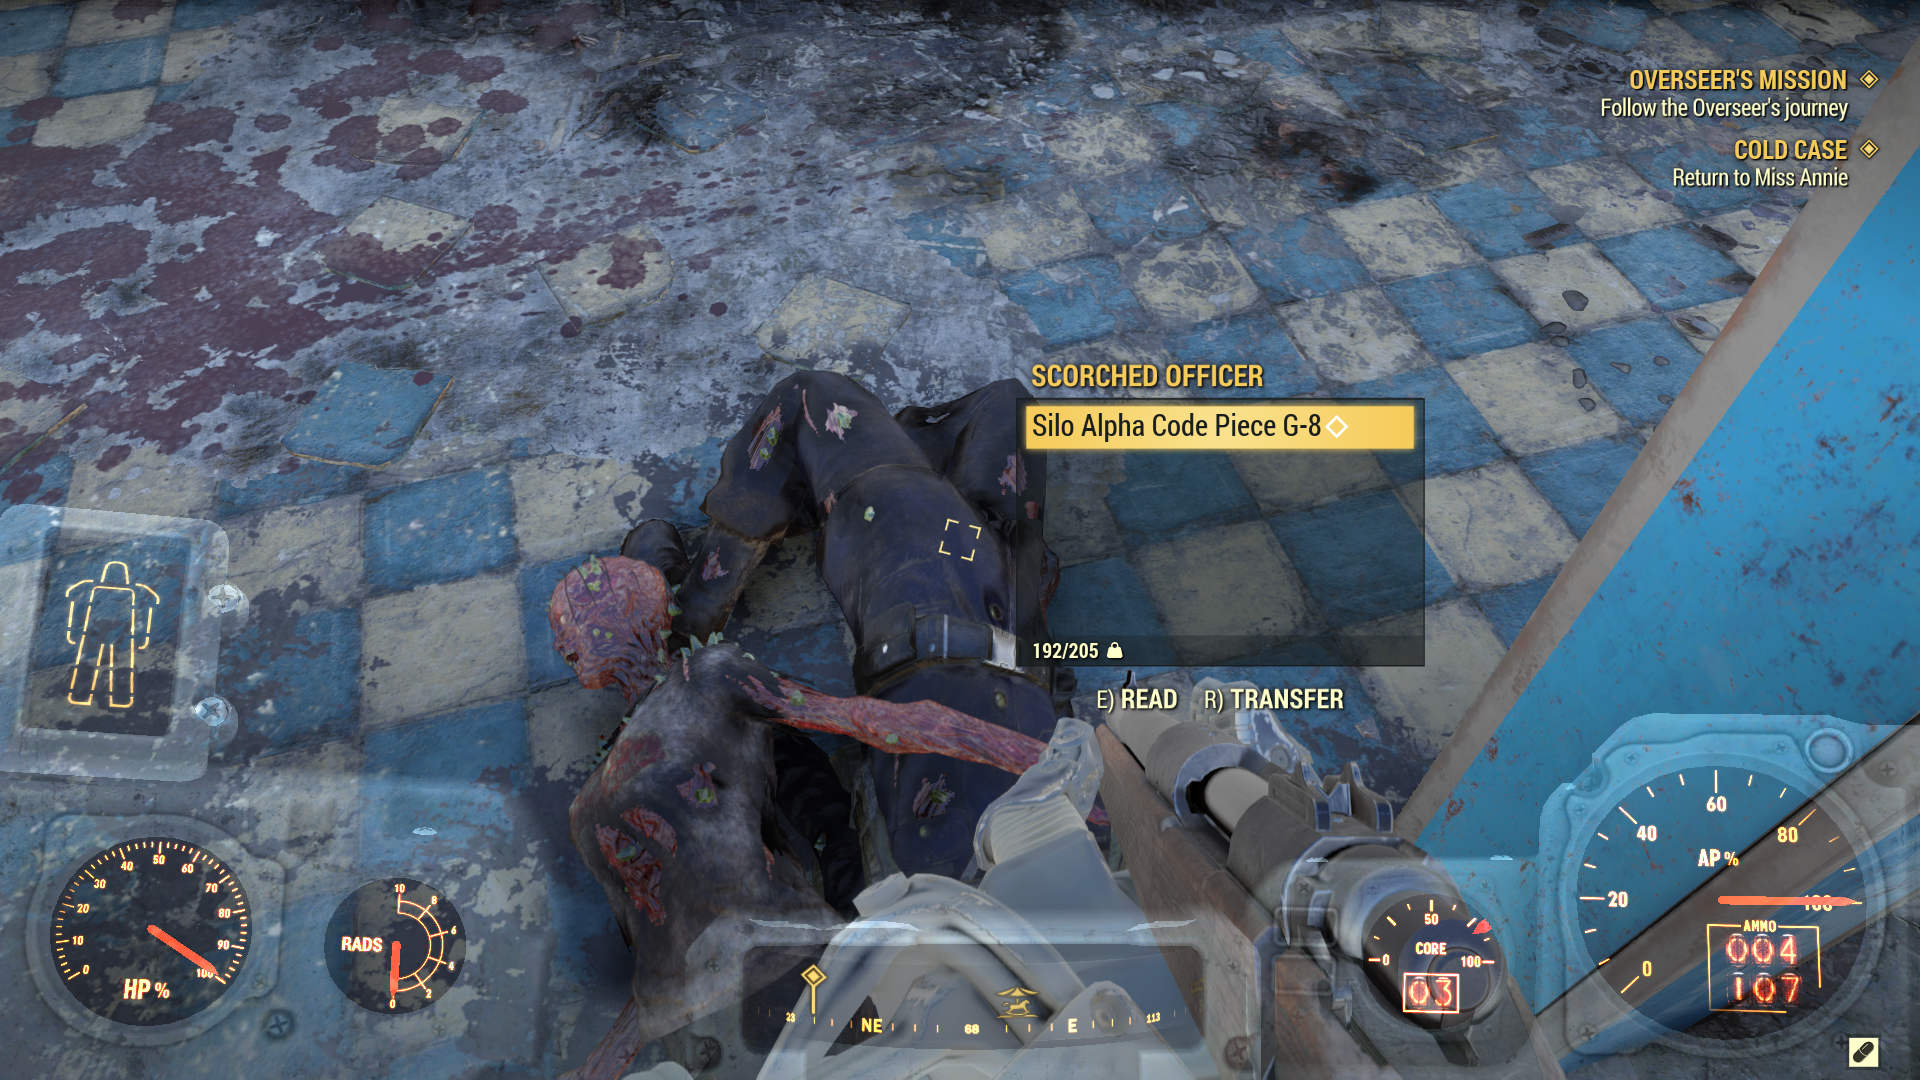 Fallout 76 nuke codes: how to get launch codes in Fallout 76 | PCGamesN